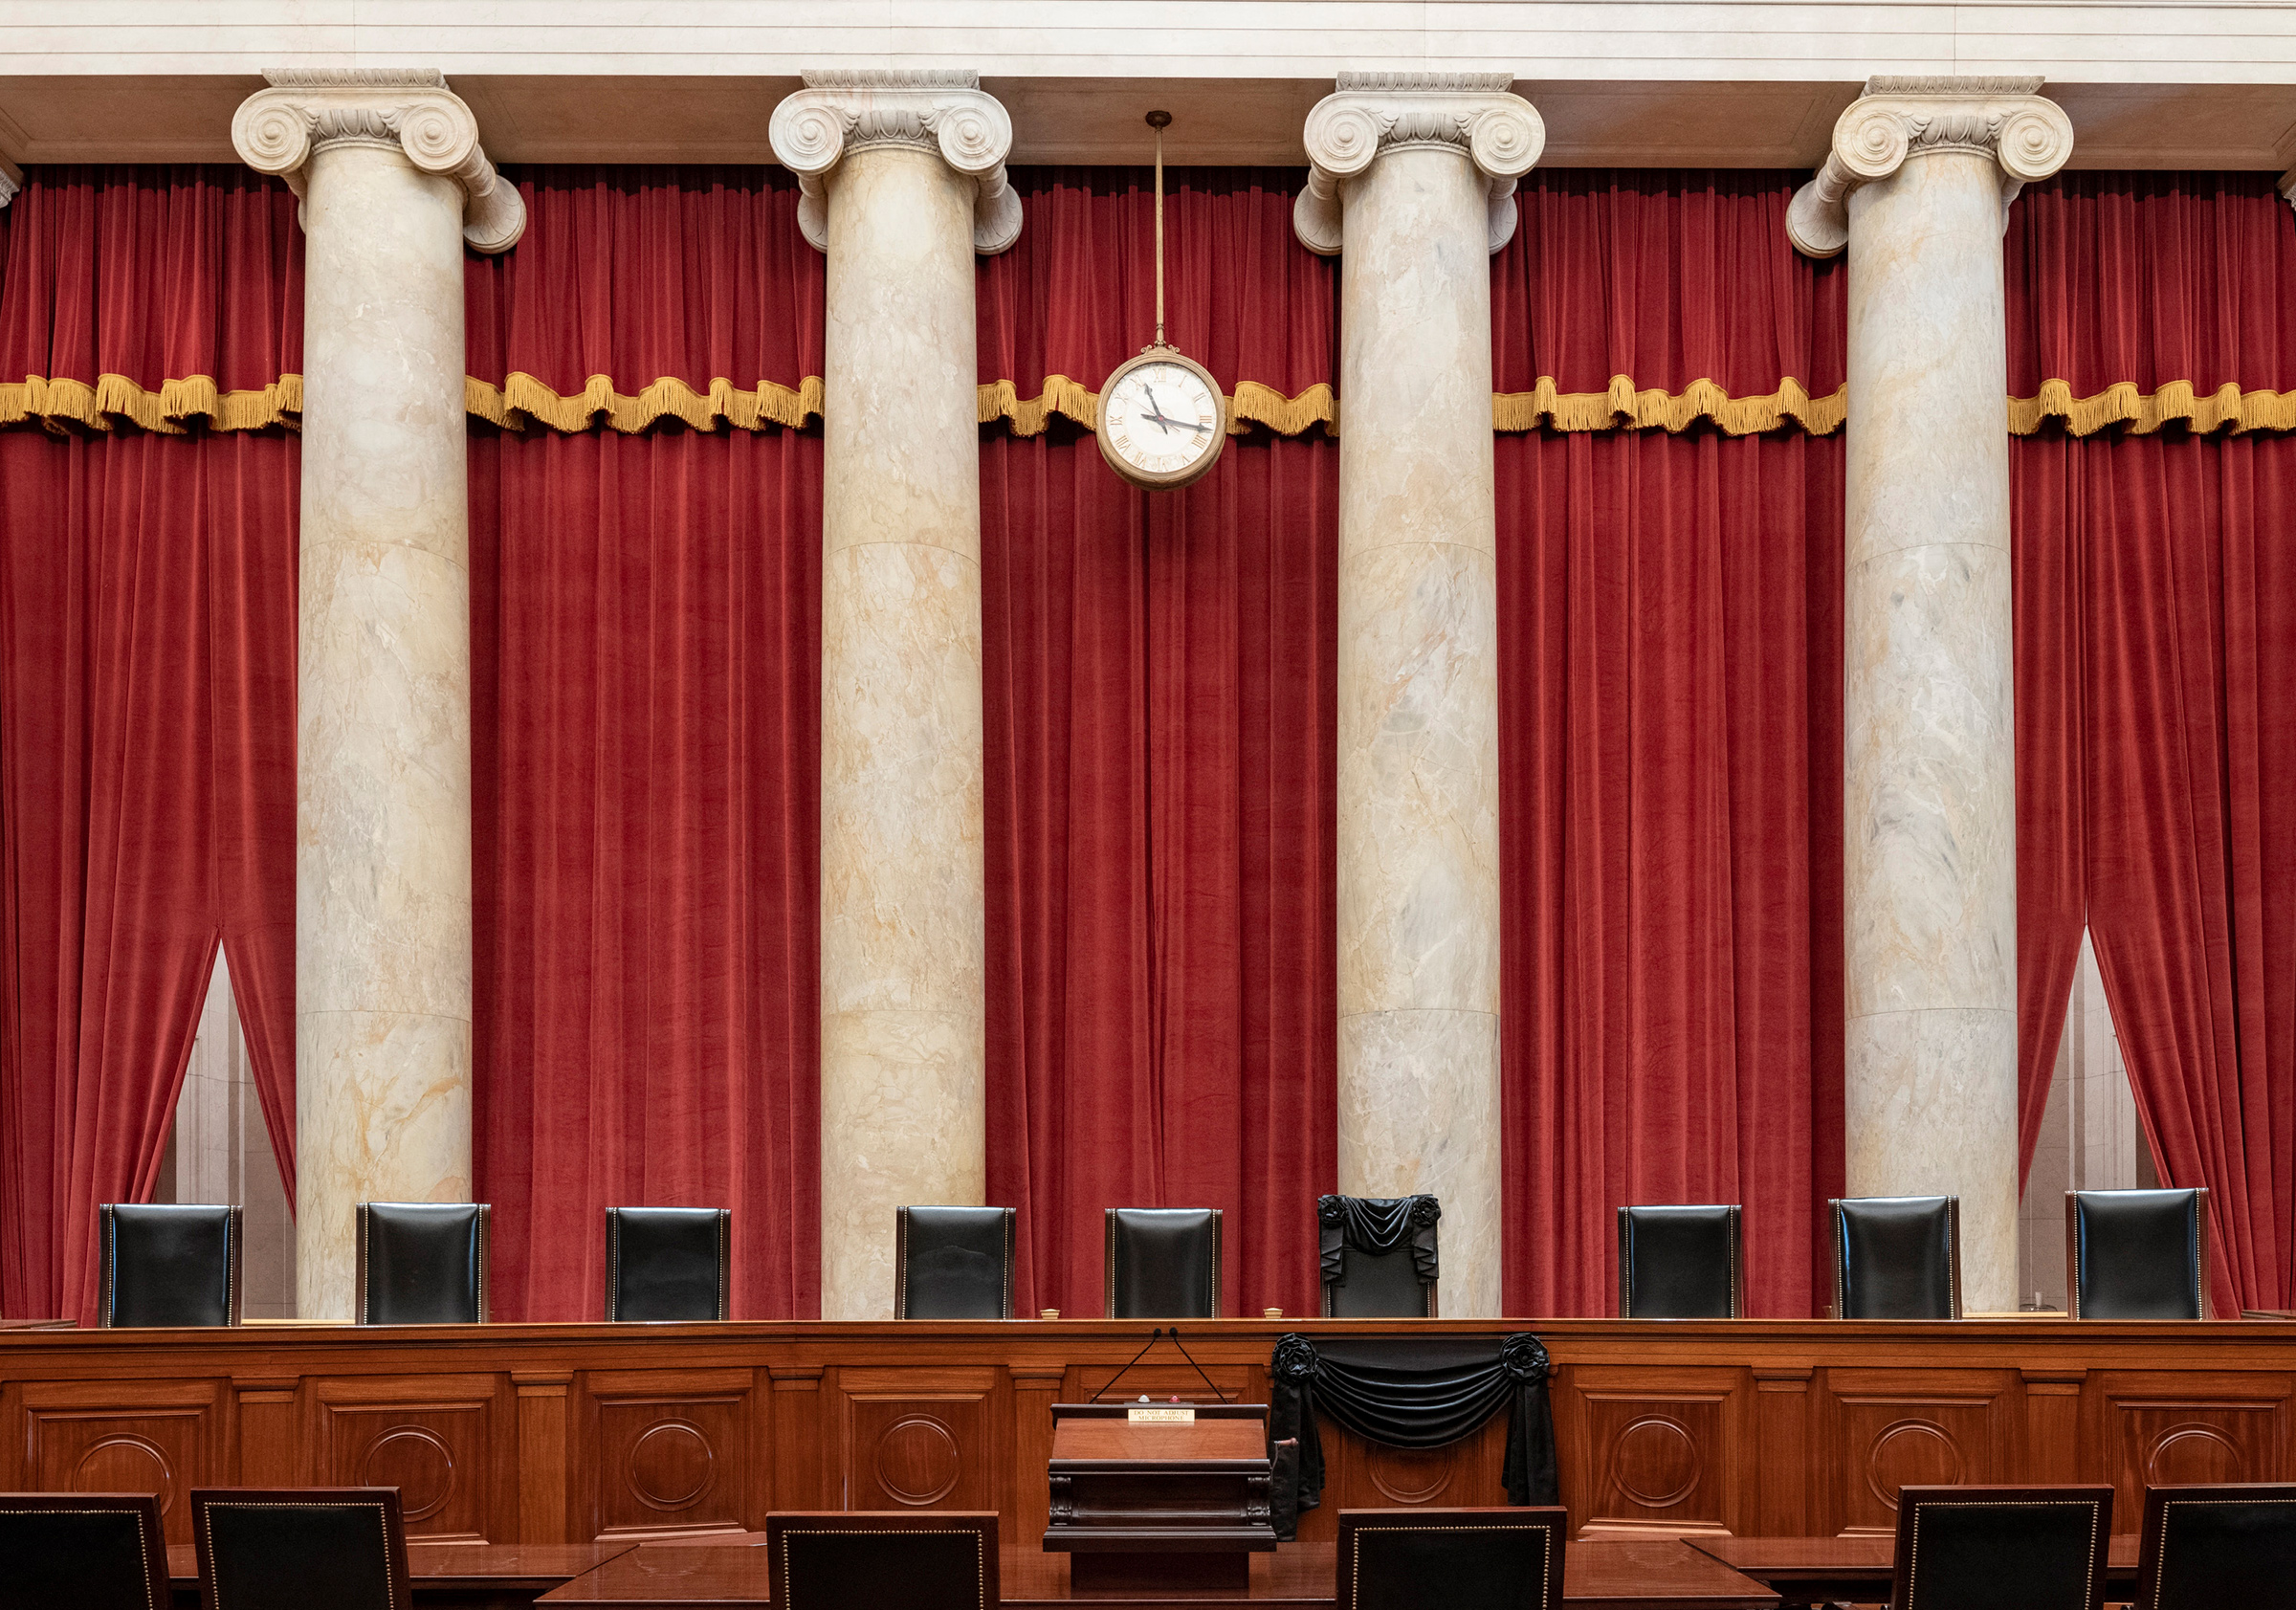 This Sept. 19 photo shows the Bench draped for the death of Supreme Court Associate Justice Ruth Bader Ginsburg at the Supreme Court in Washington